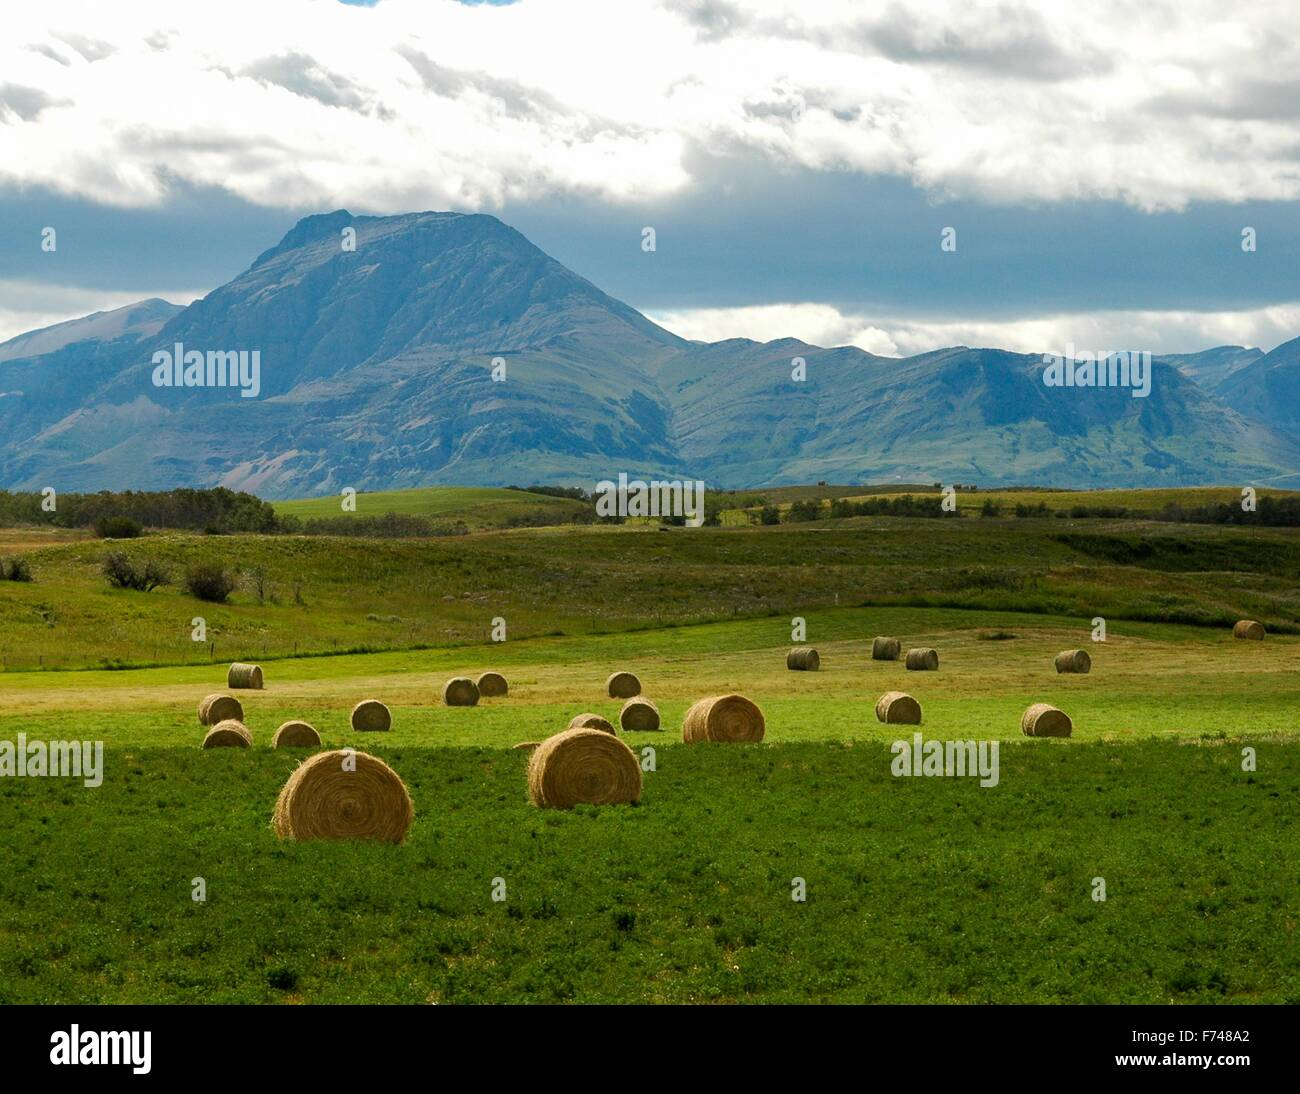 Majestic foothills in southern Alberta. - Stock Image